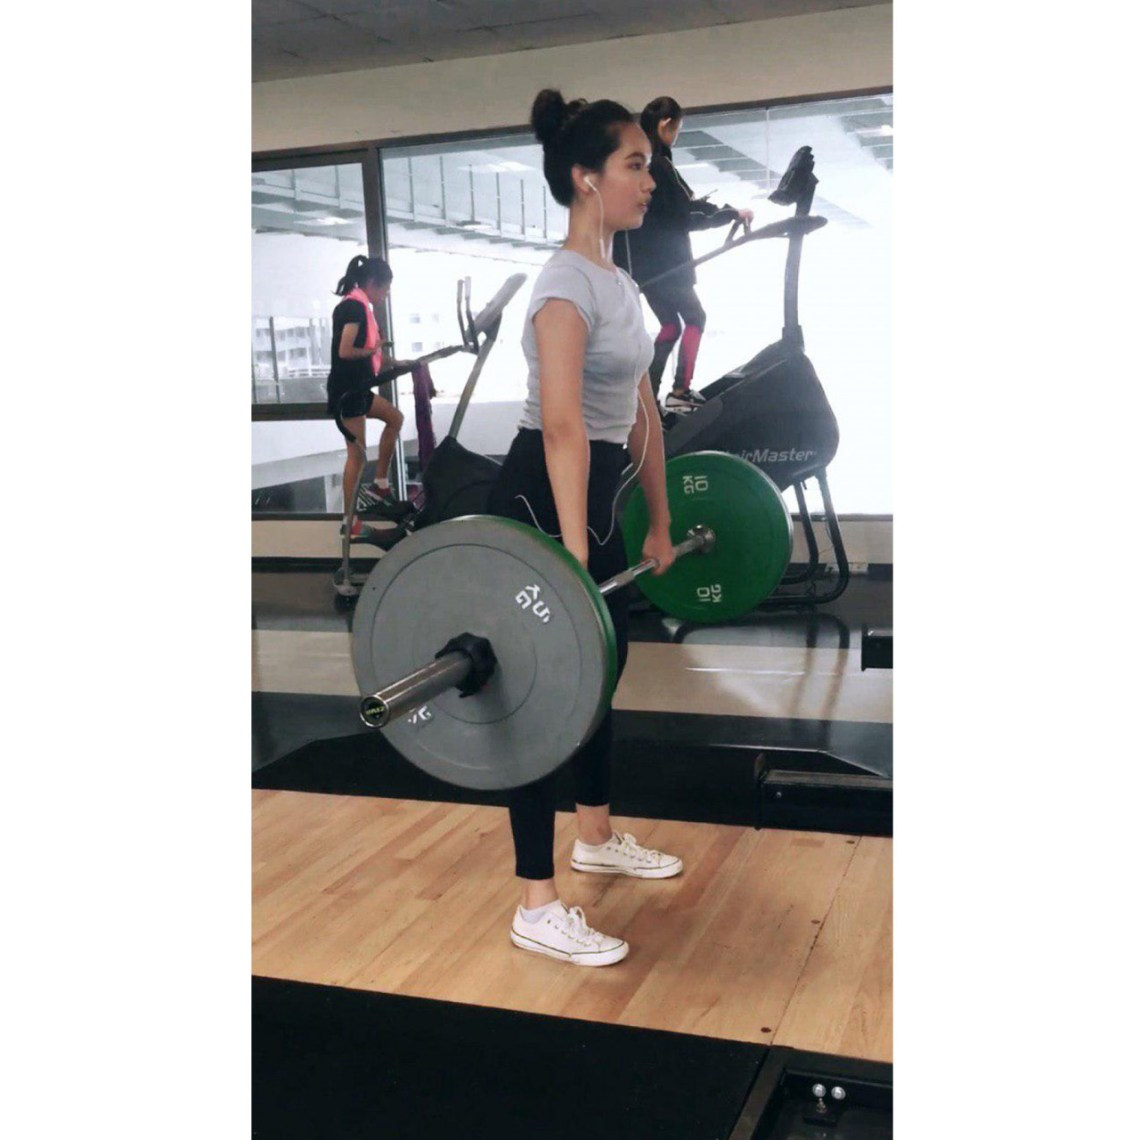 deadlifting at the gym